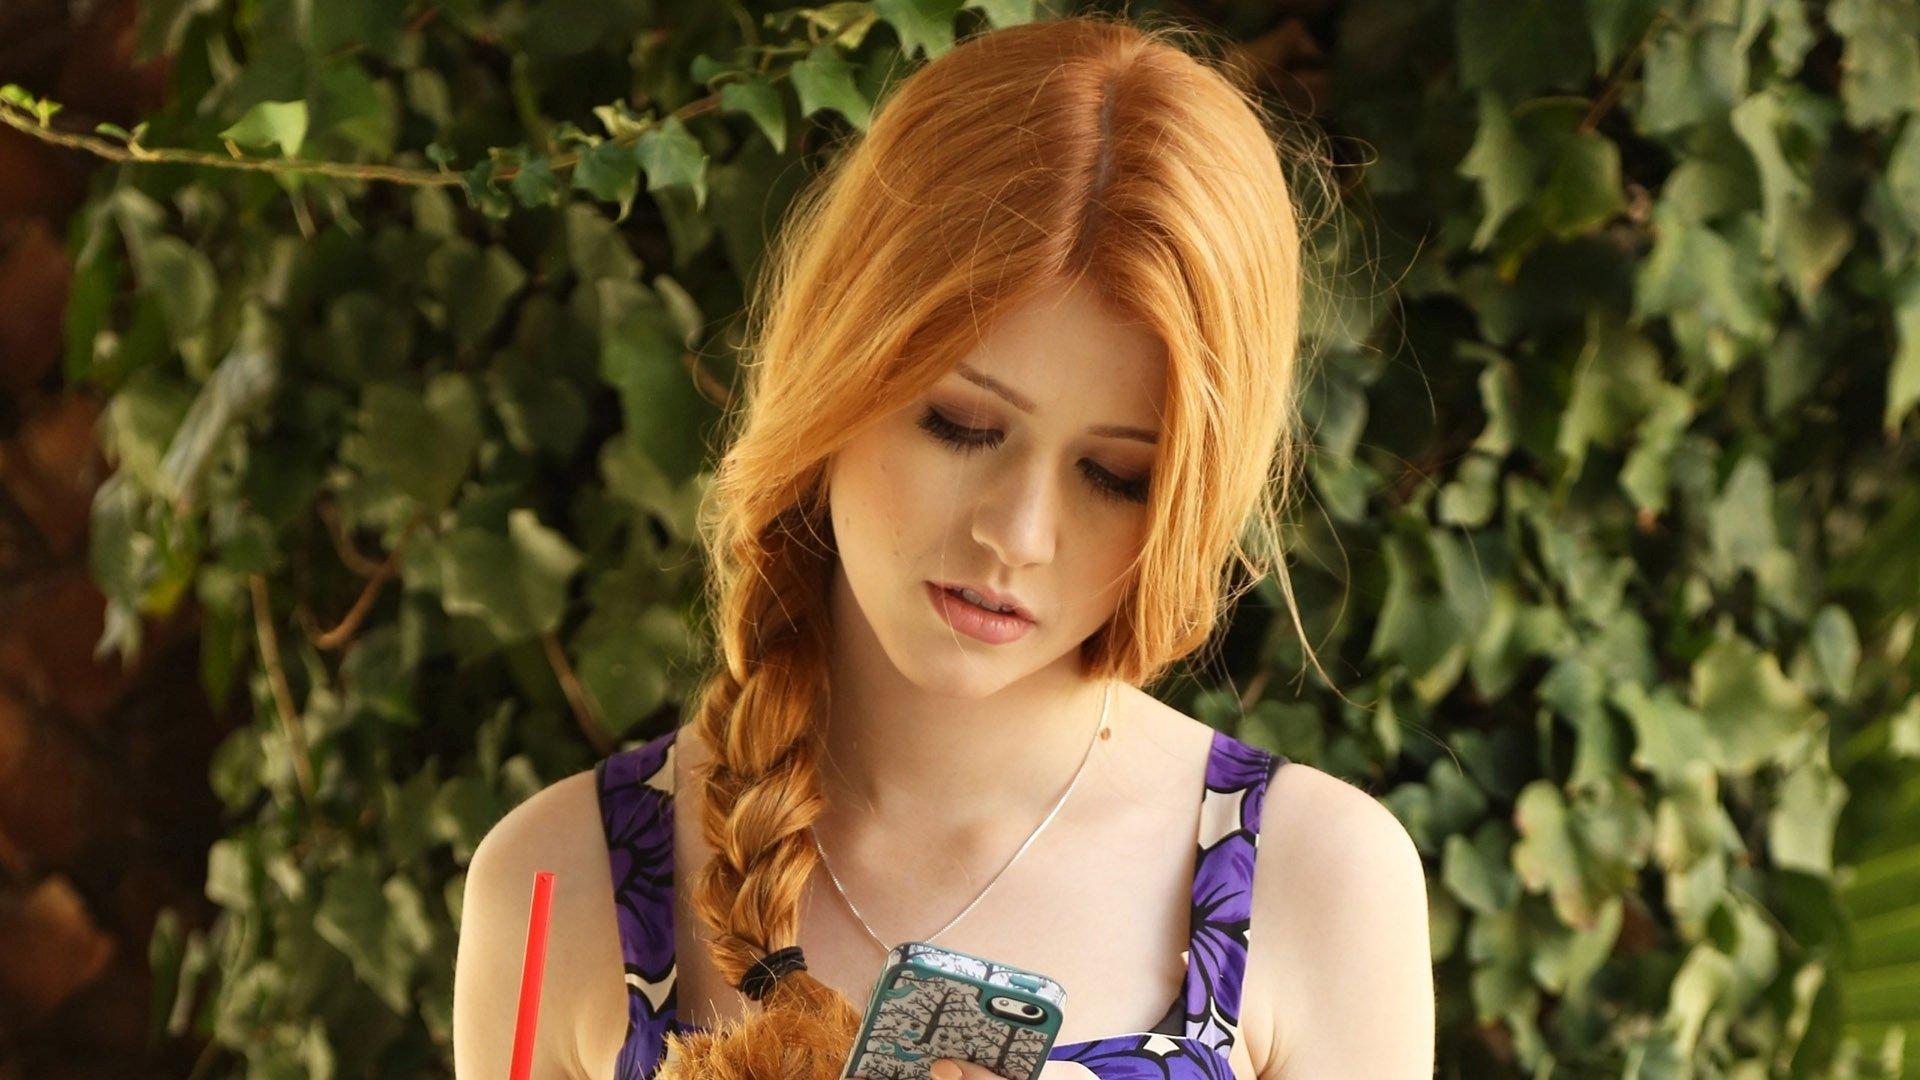 Gorgeous Katherine Mcnamara Photos Free Download